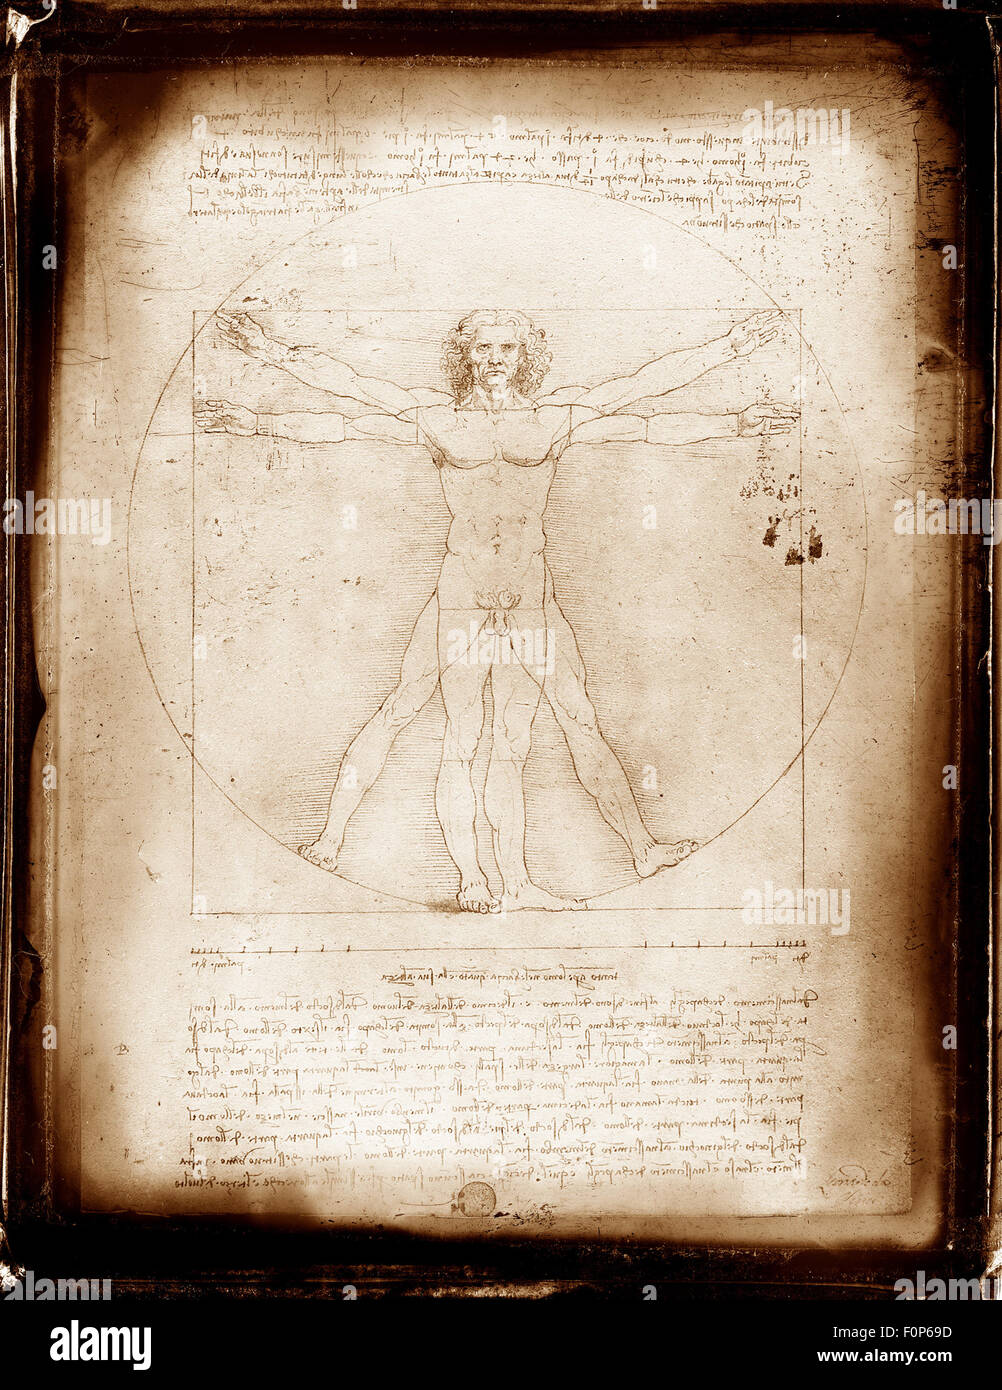 Vitruvian man composite with grunge frame photography effect - Stock Image